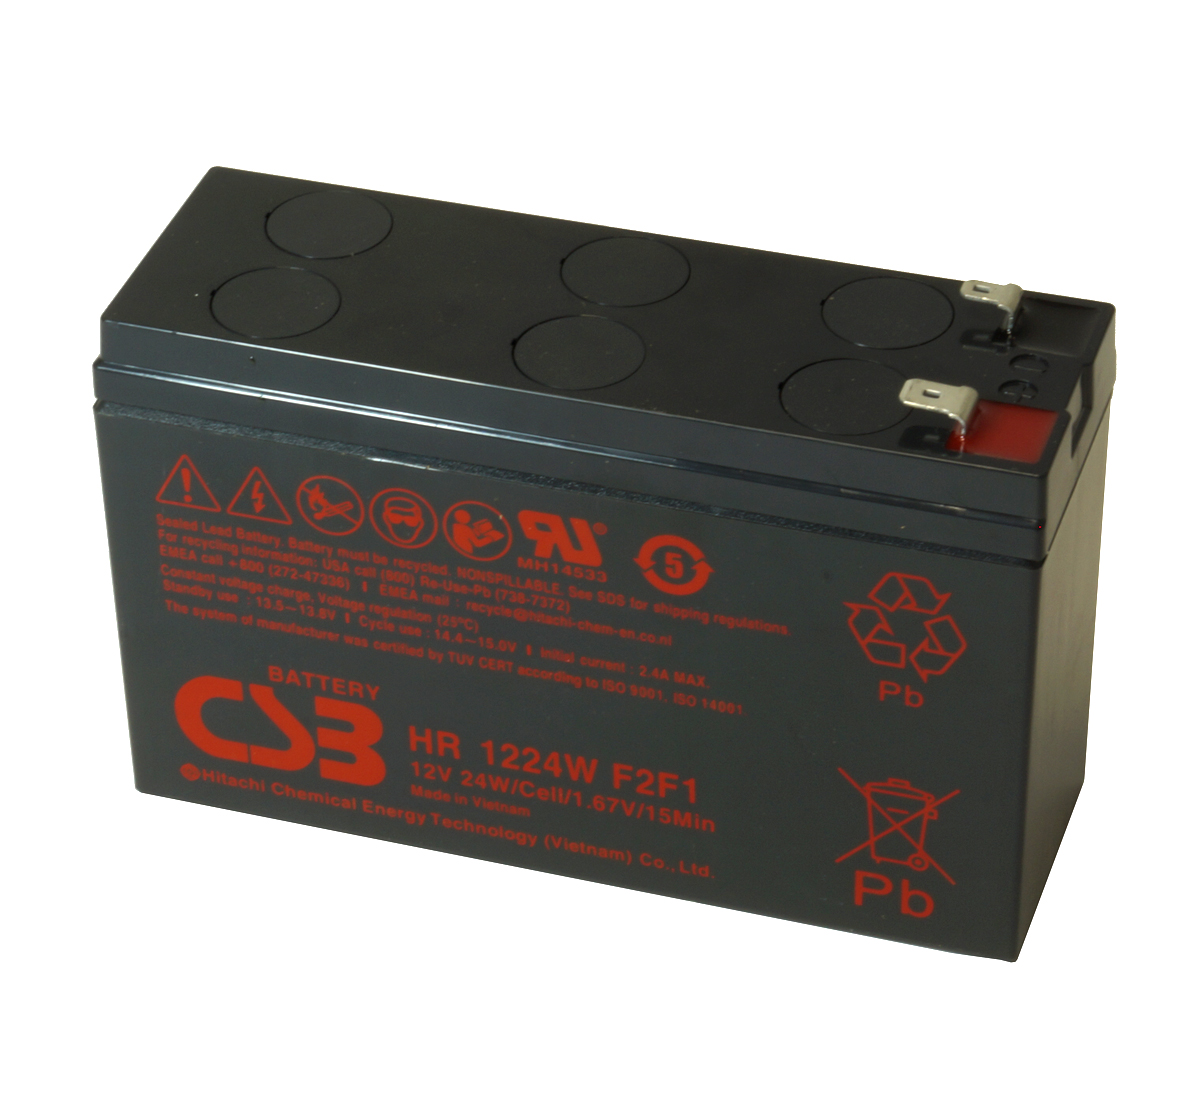 MDS125 UPS Battery Kit - Replaces APC RBC125